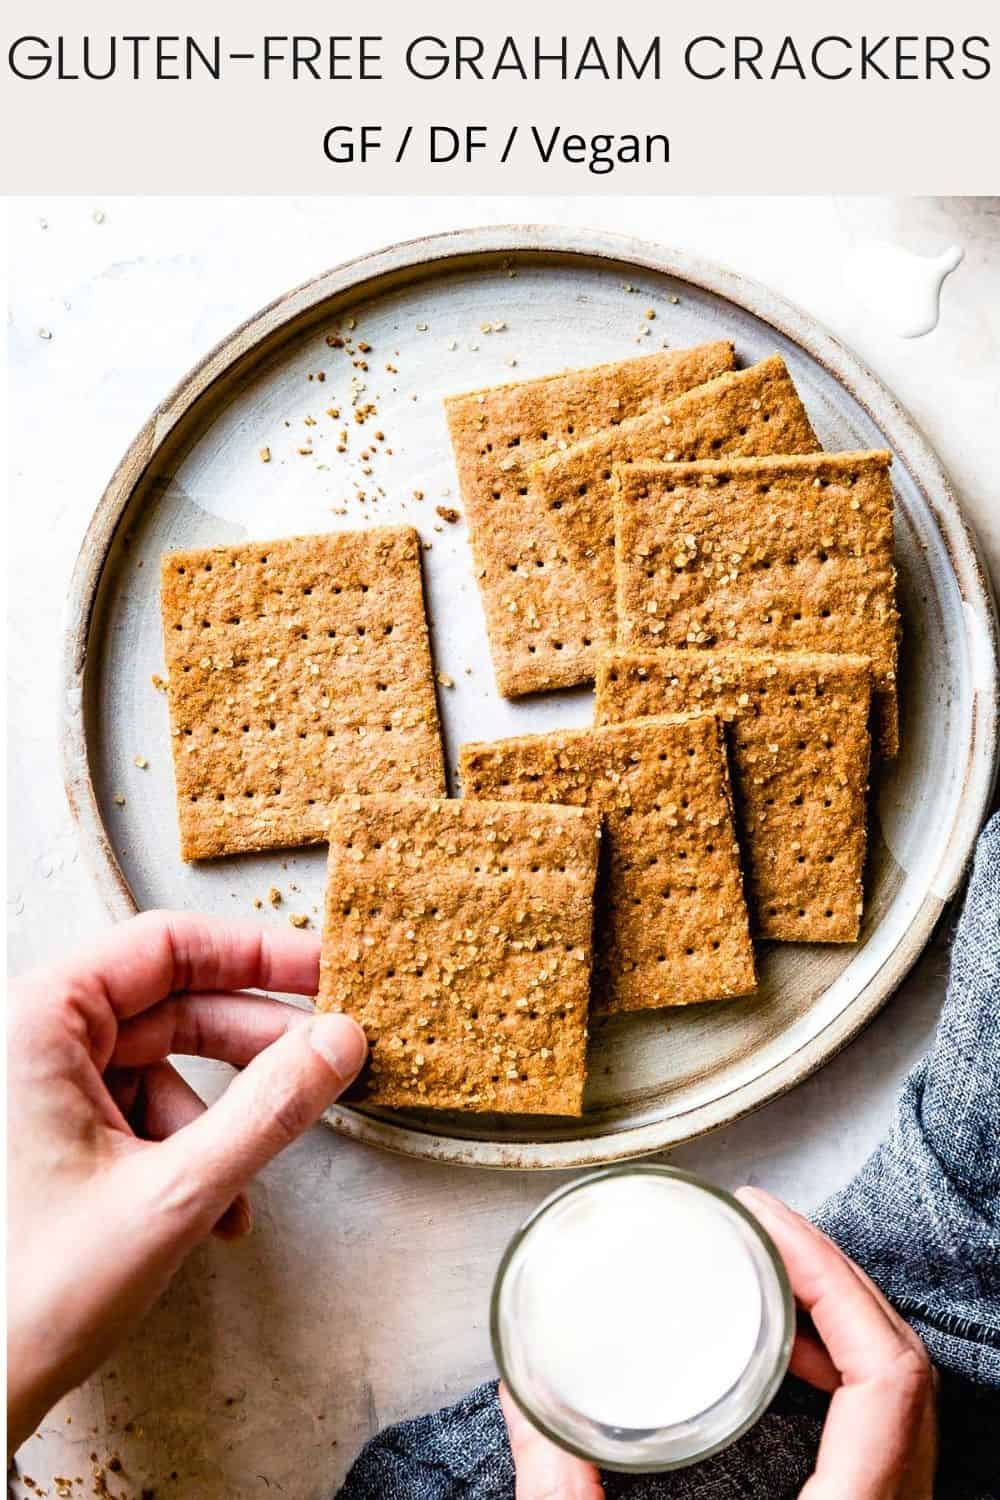 plate of GF graham crackers with text overlay